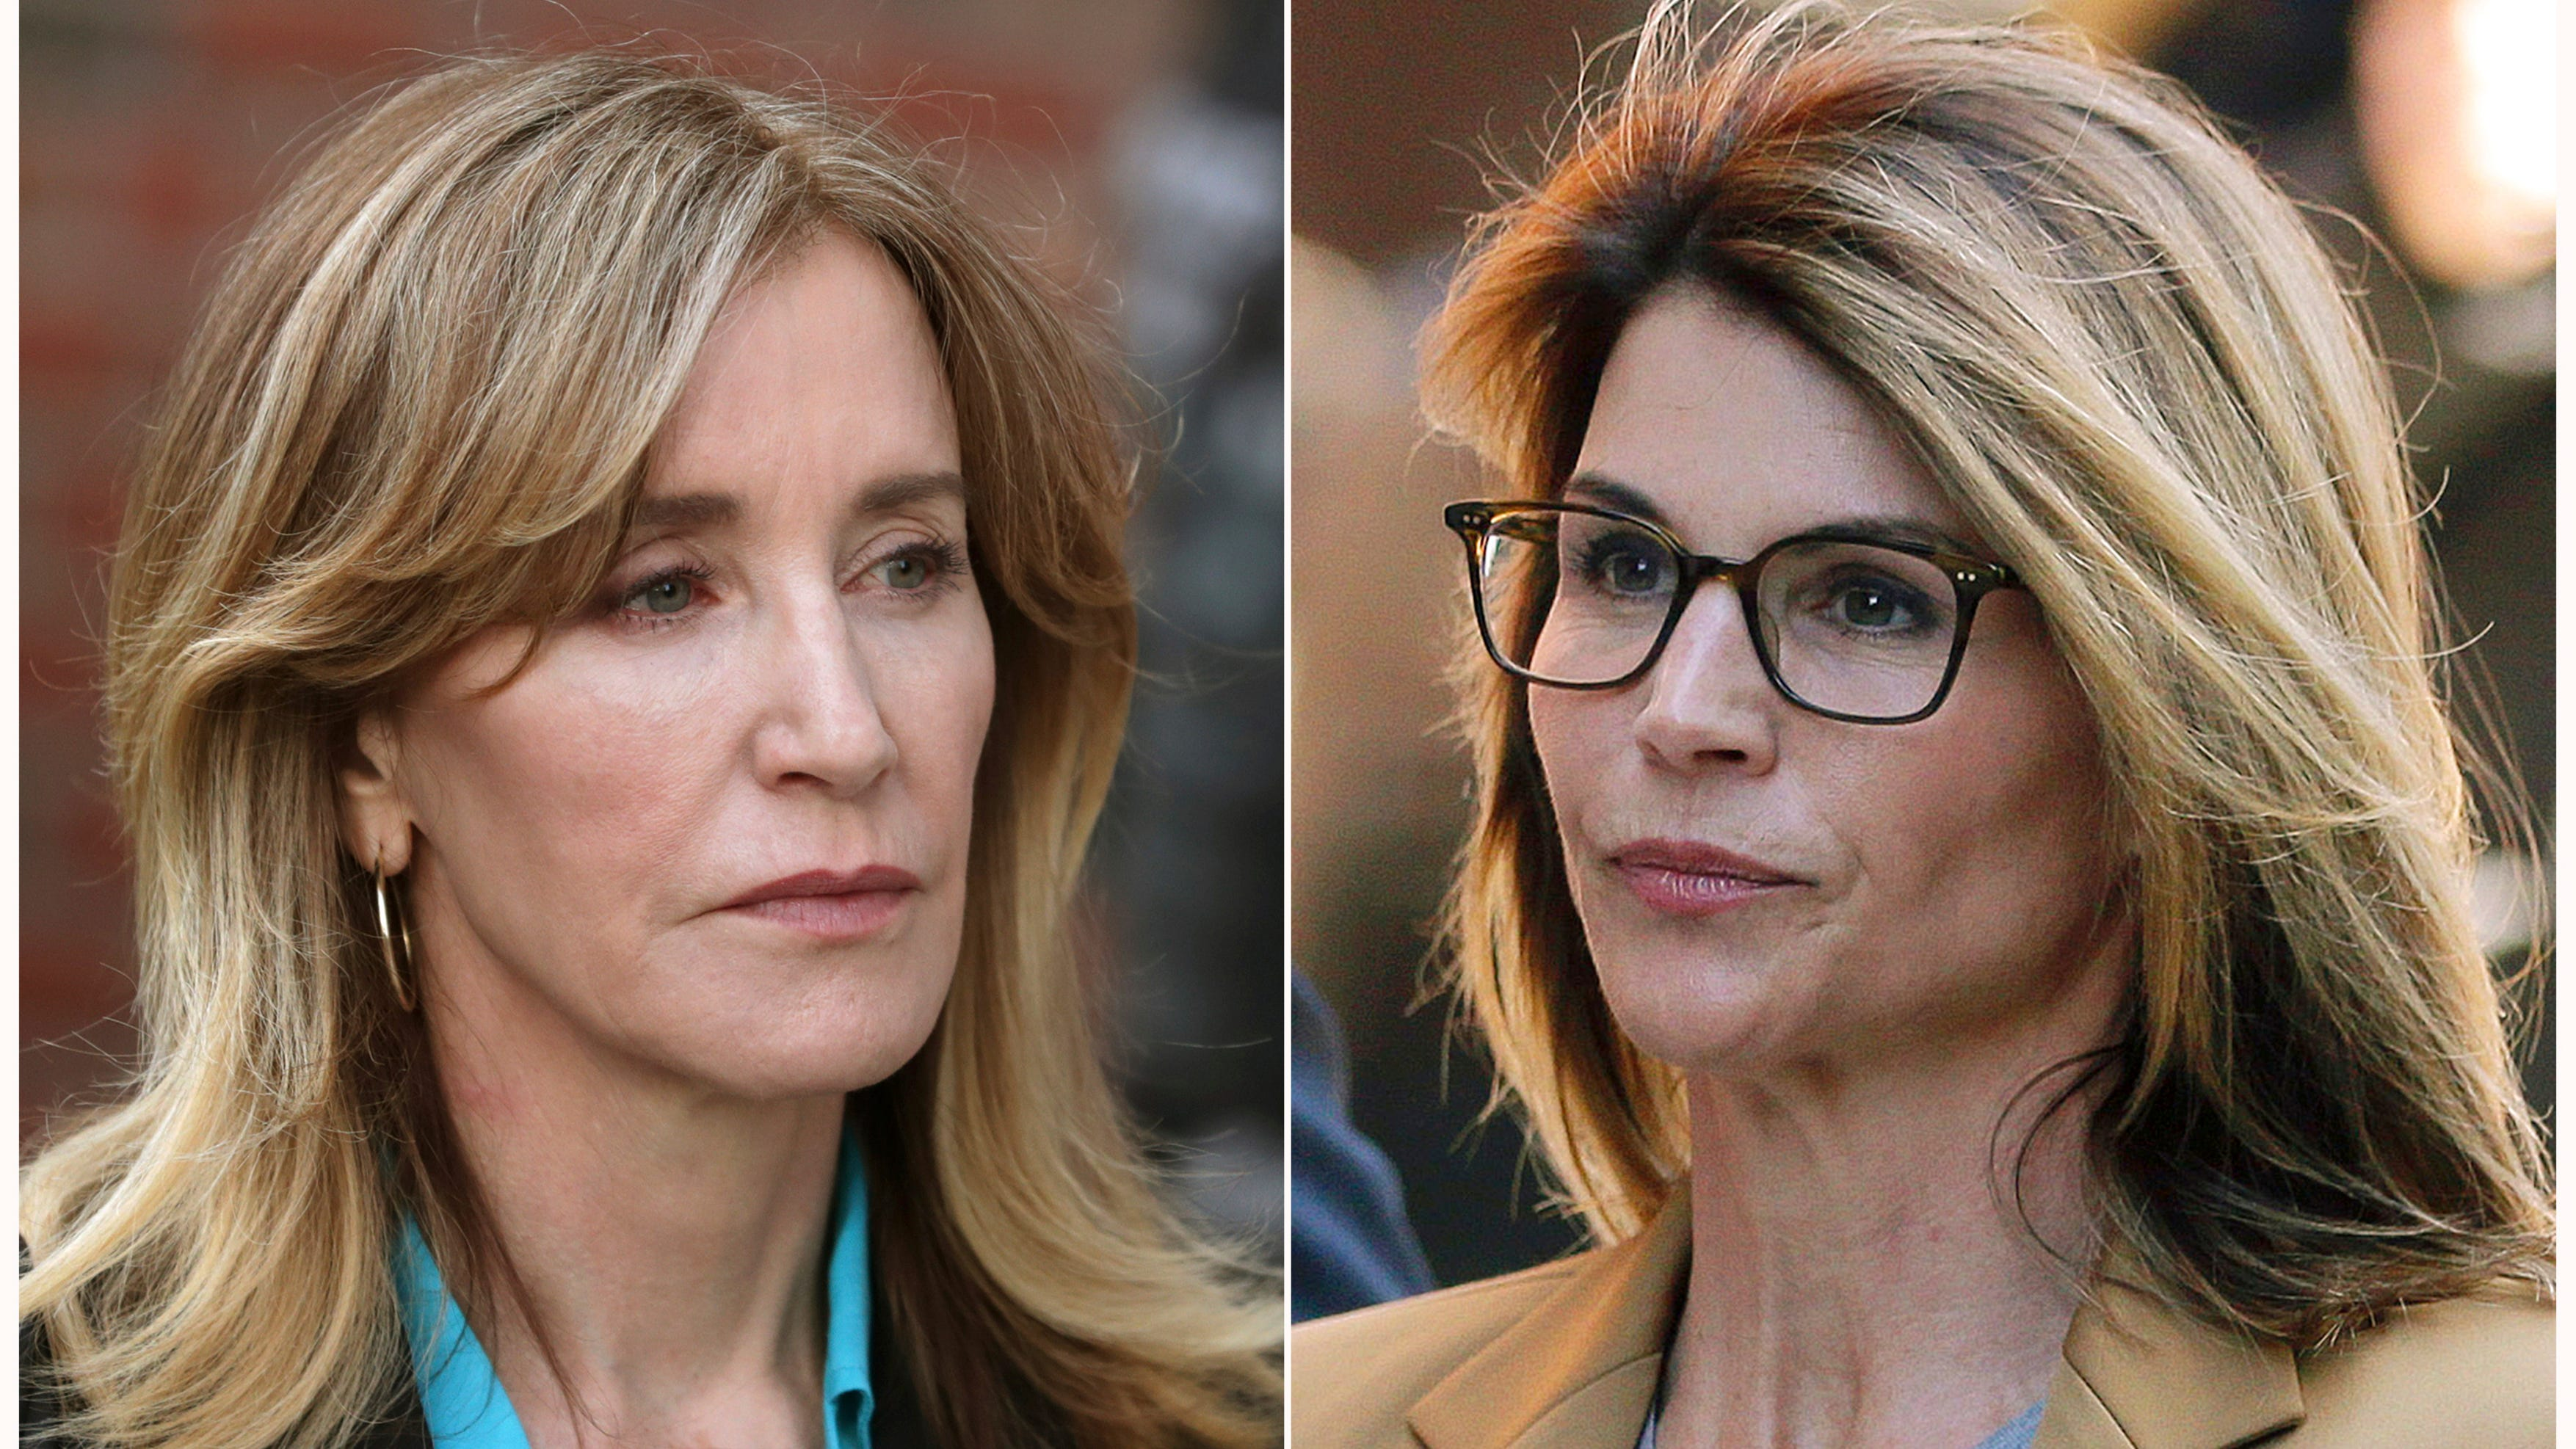 Actresses Felicity Huffman, left, and Lori Loughlin outside of federal court in Boston on April 3, 2019.